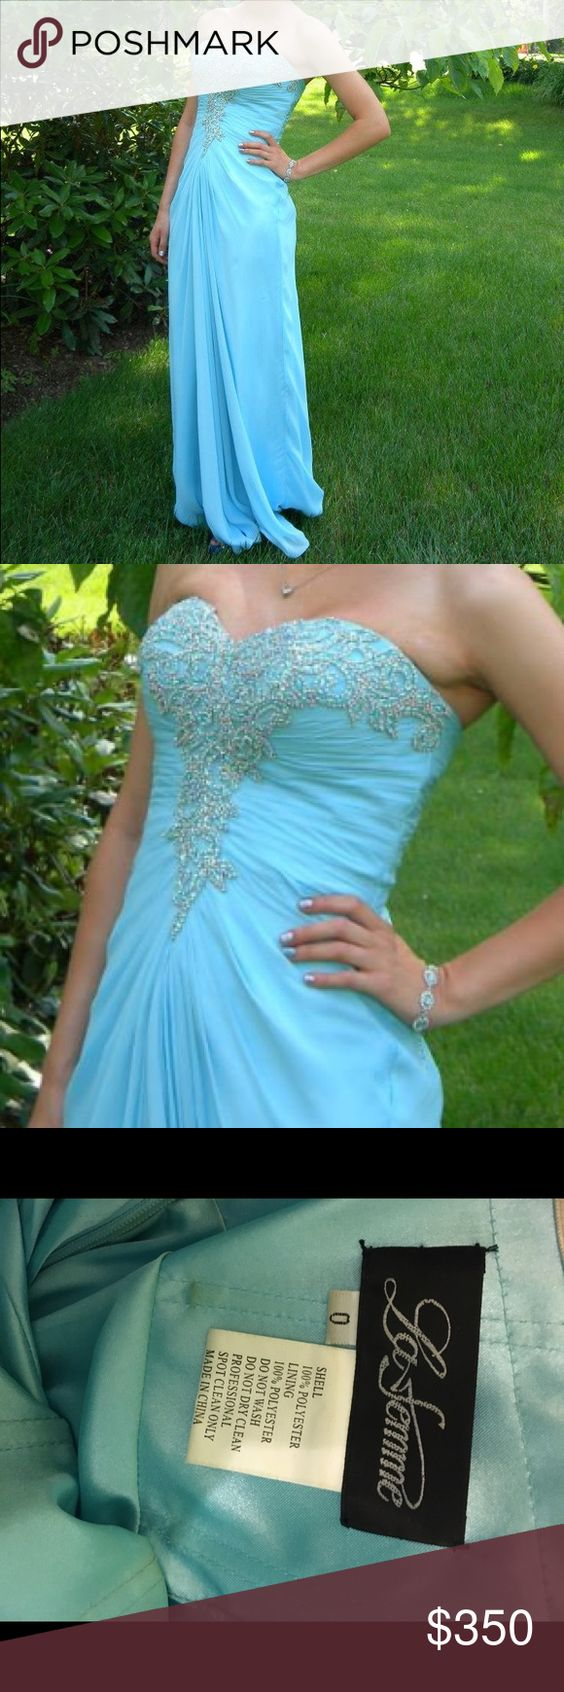 Embellished prom dress! Light blue embellished prom dress! Only worn once!! Size 0 with A/B cups! Gorgeous detail on the front! La Femme Dresses Prom